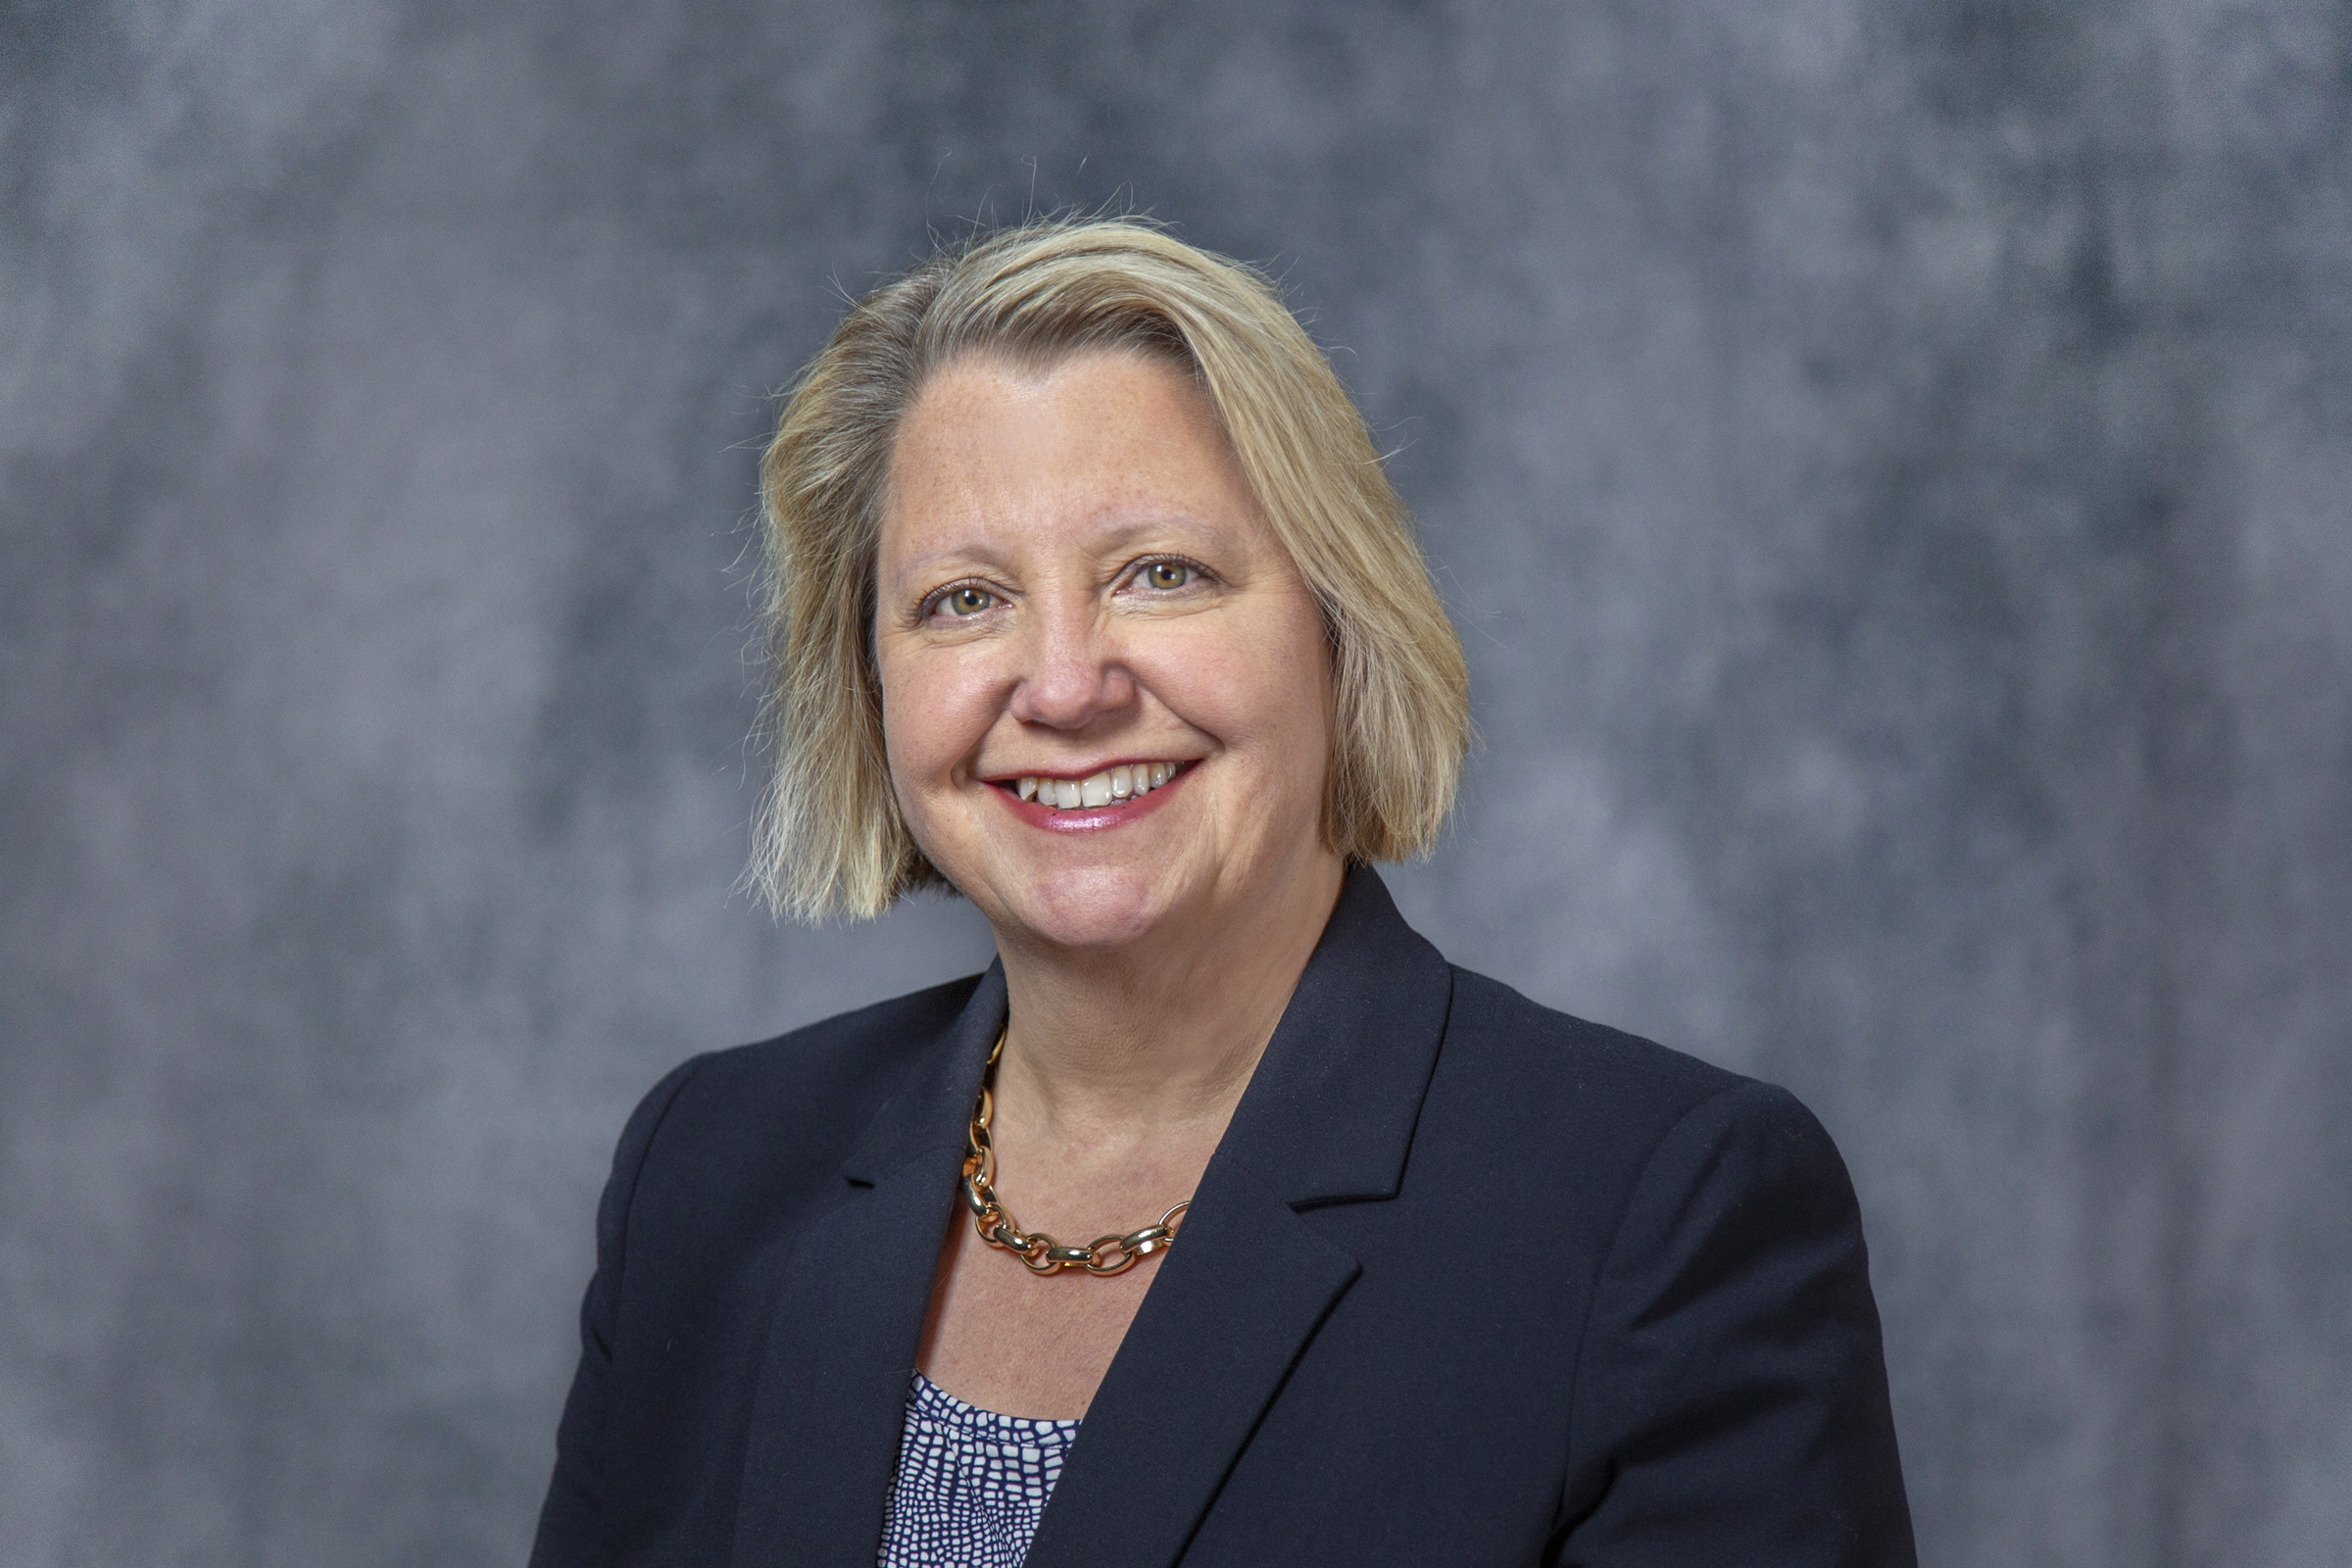 Pam Helgeson-Britton, St. Luke's Director of Quality Management